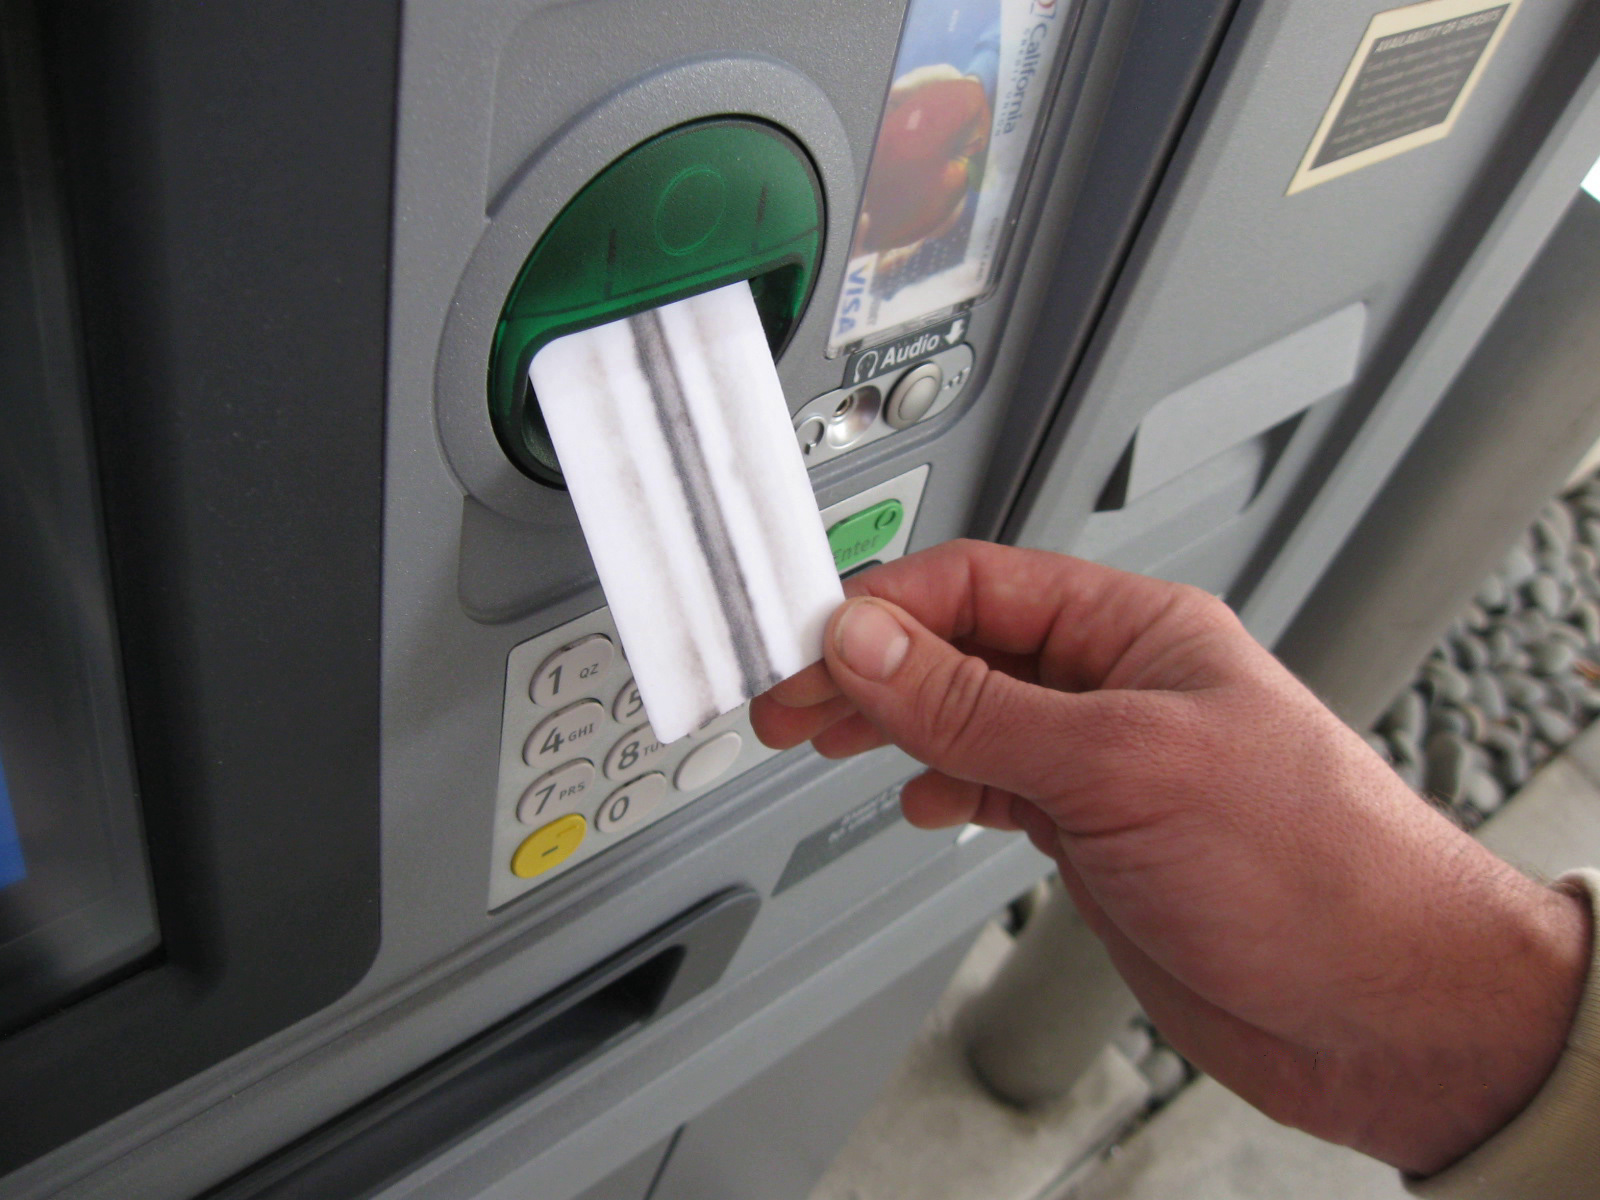 ATM Cleaning Card for brochure